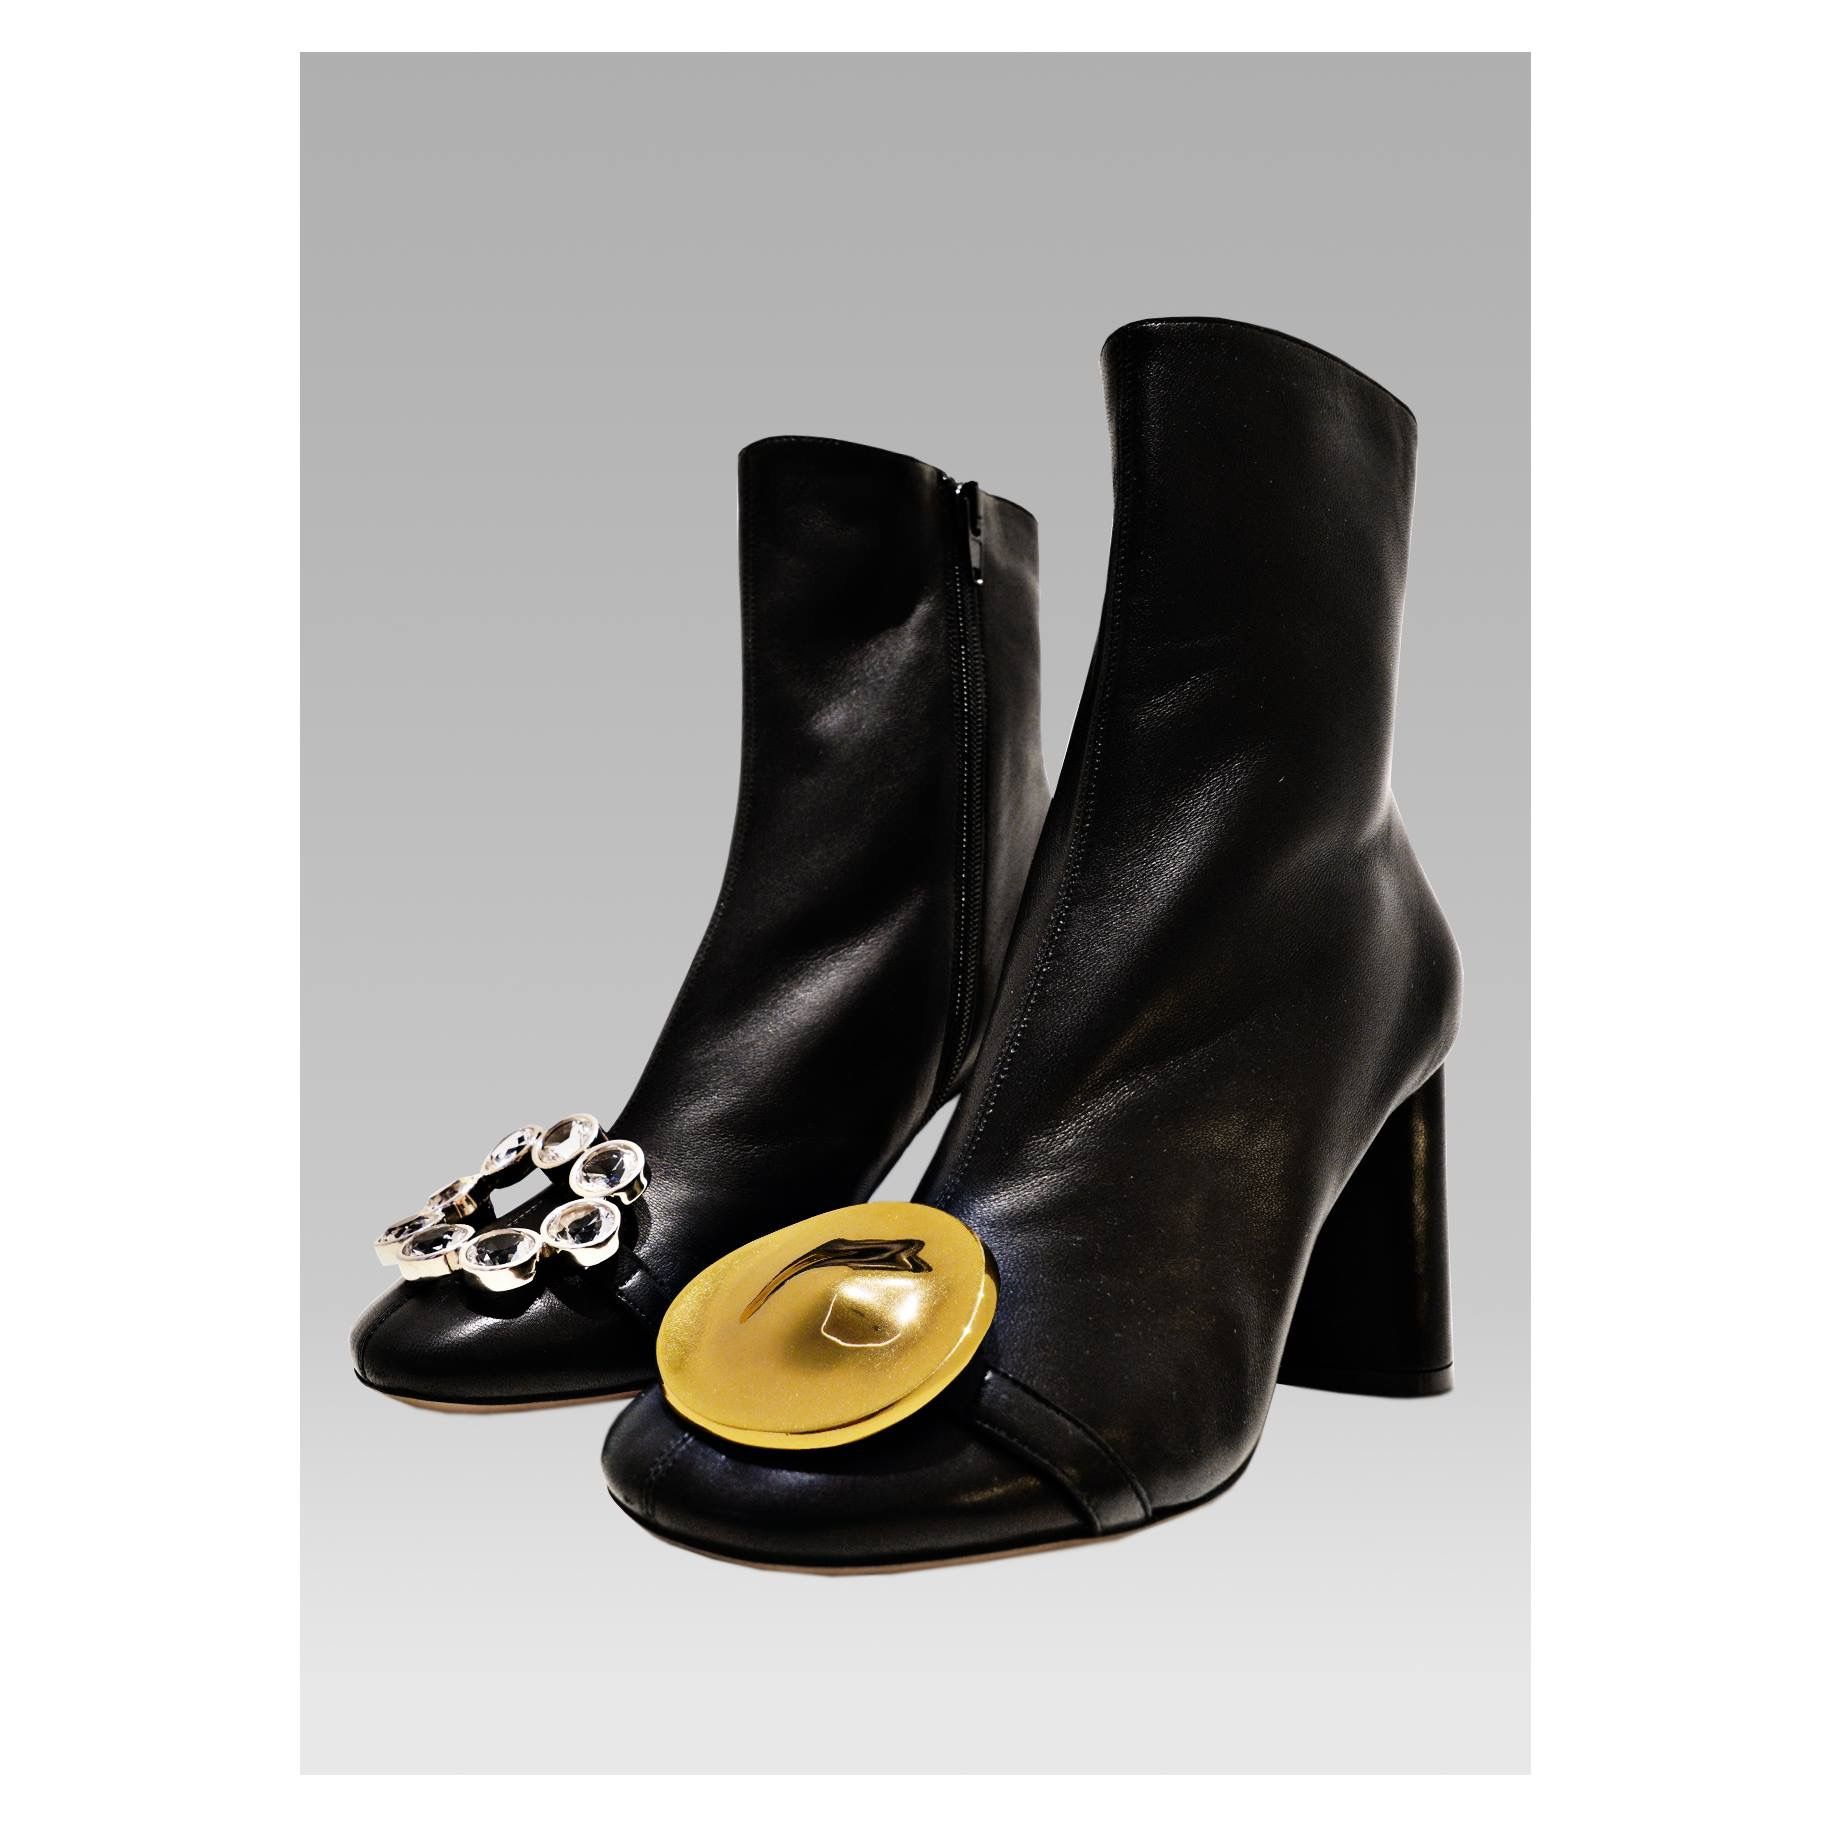 b243149a4d7 CÉLINE elliptic heel ankle boots with opposing jewels | Moda 18 in ...